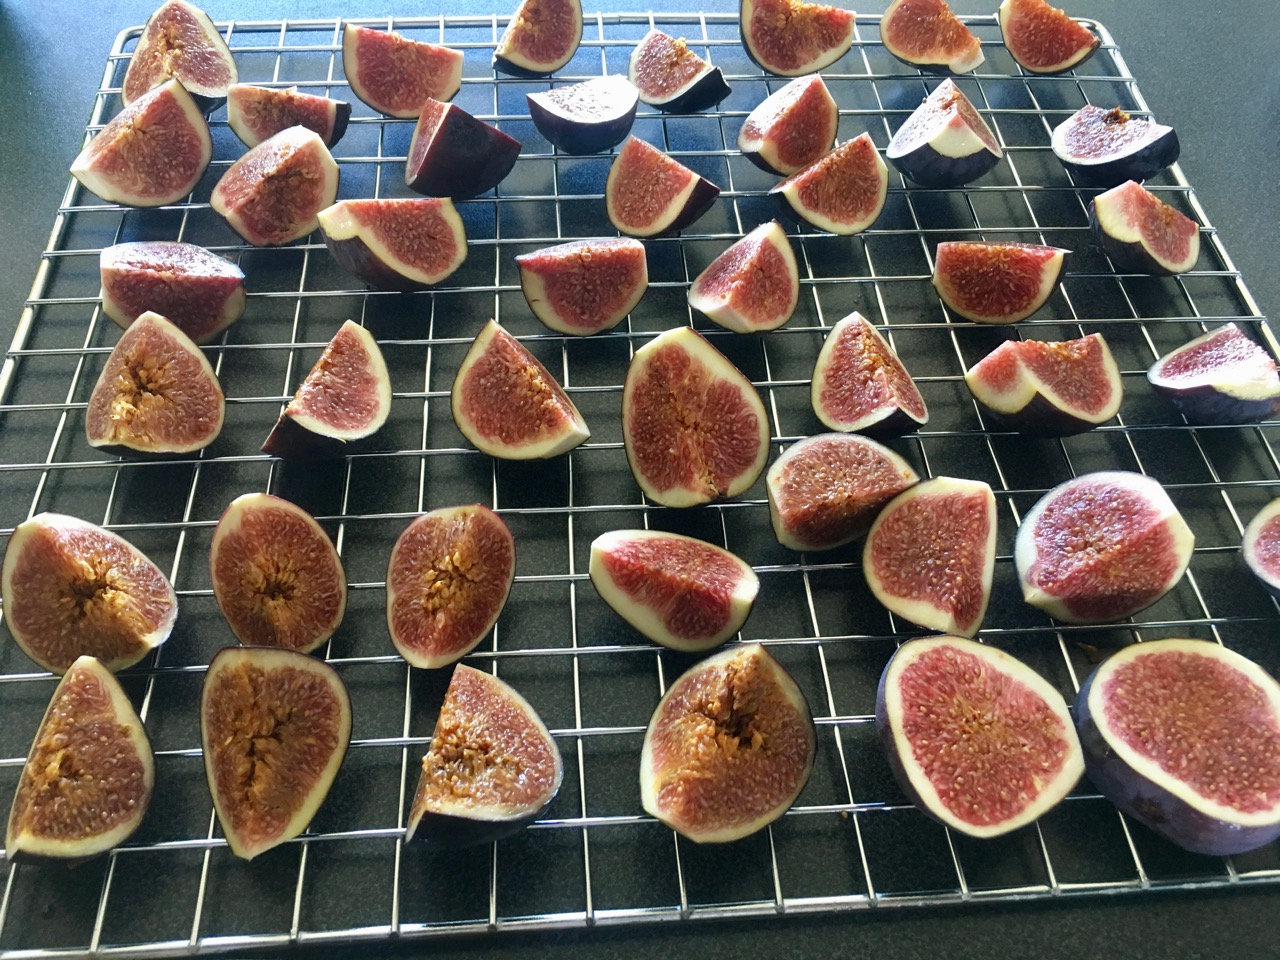 Figs waiting to go into the dehydrator